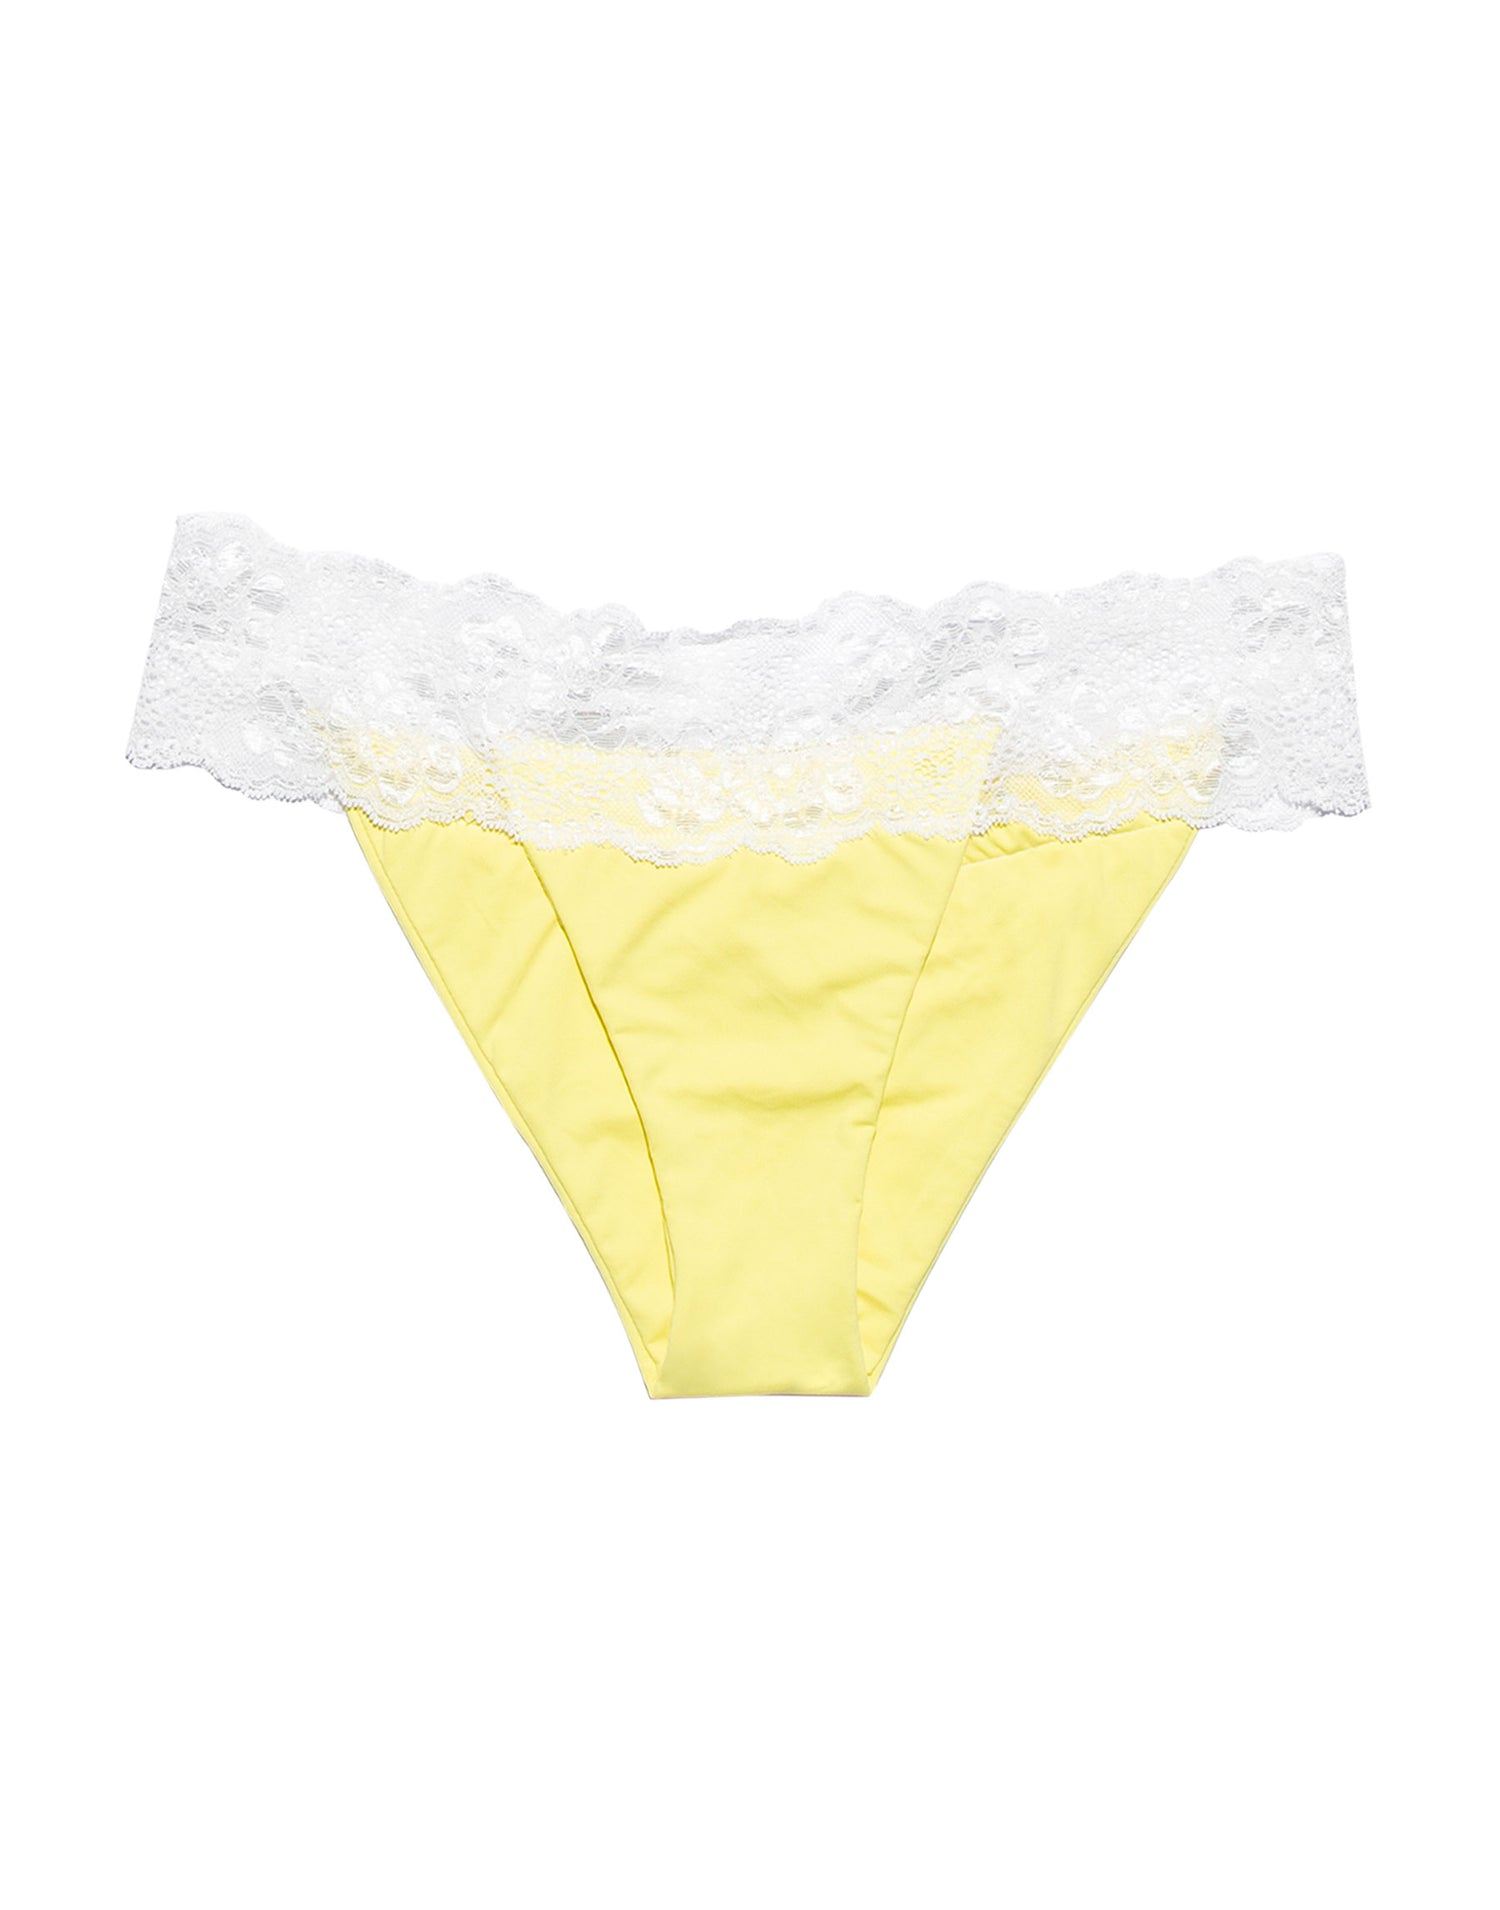 Lady Lace Skimpy Bikini Bottom in Lemon Yellow - product view